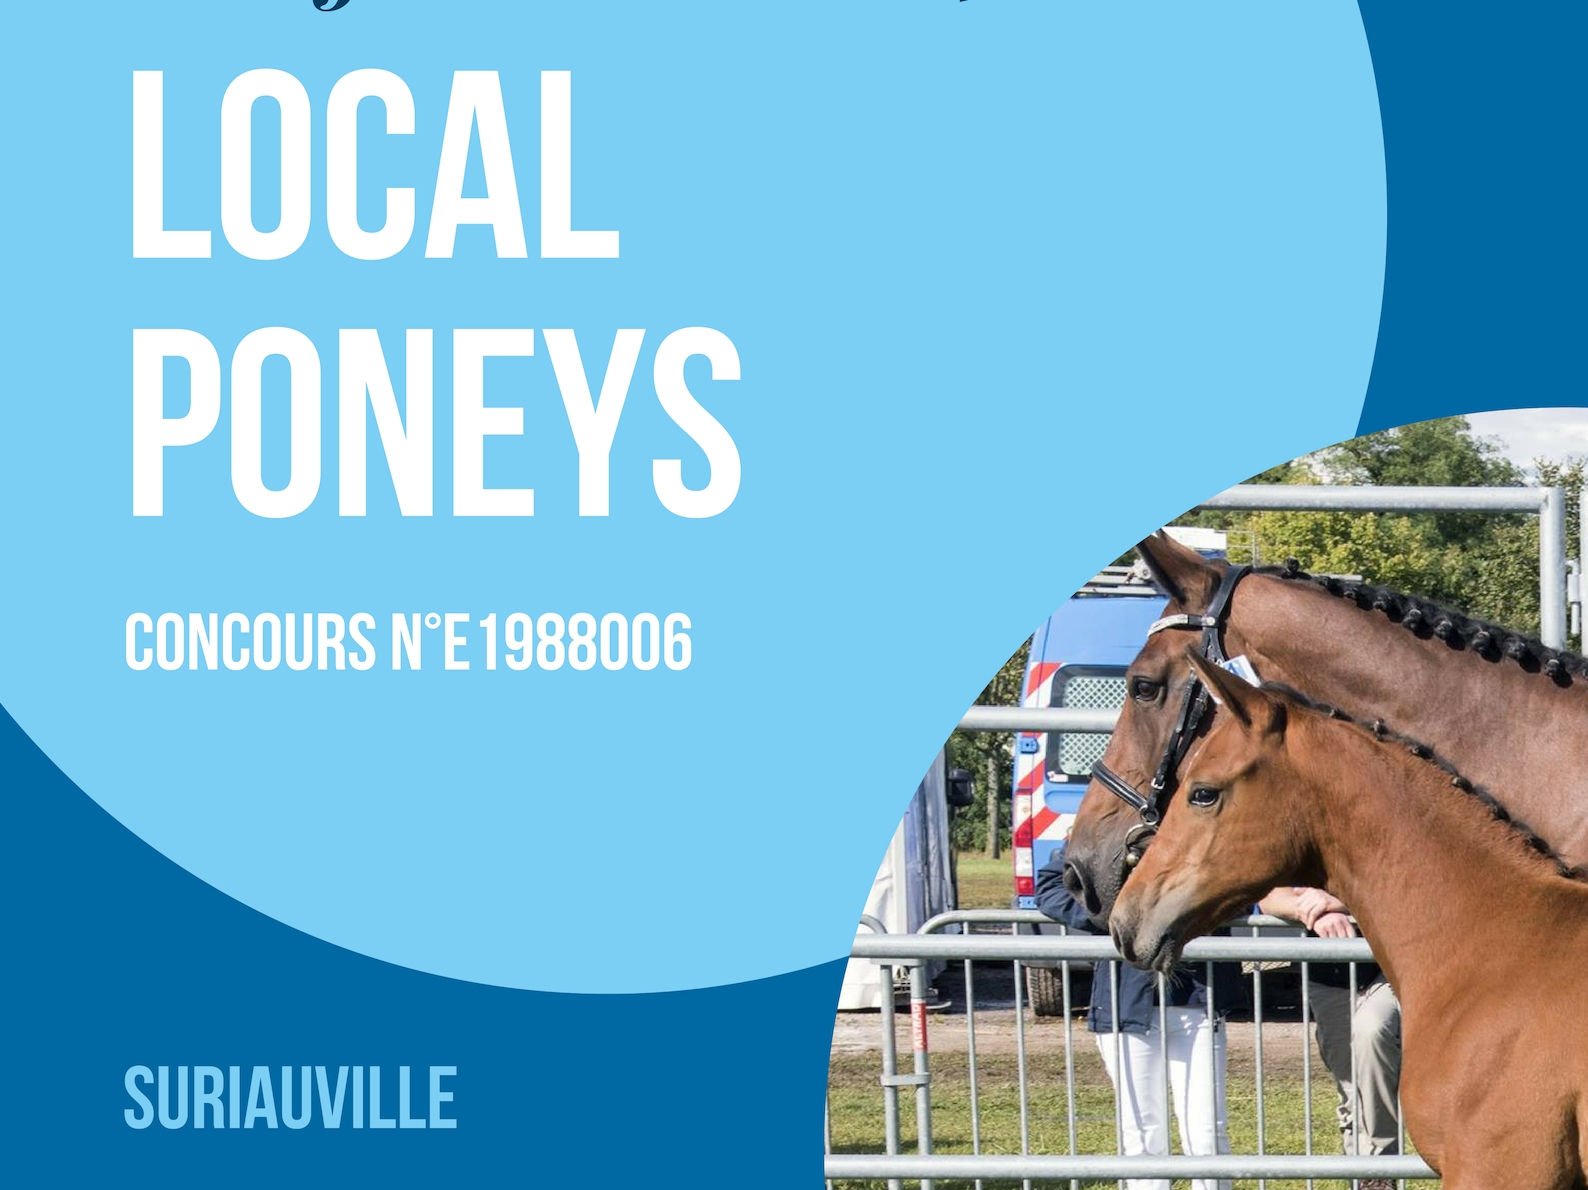 Local Poneys - Suriauville